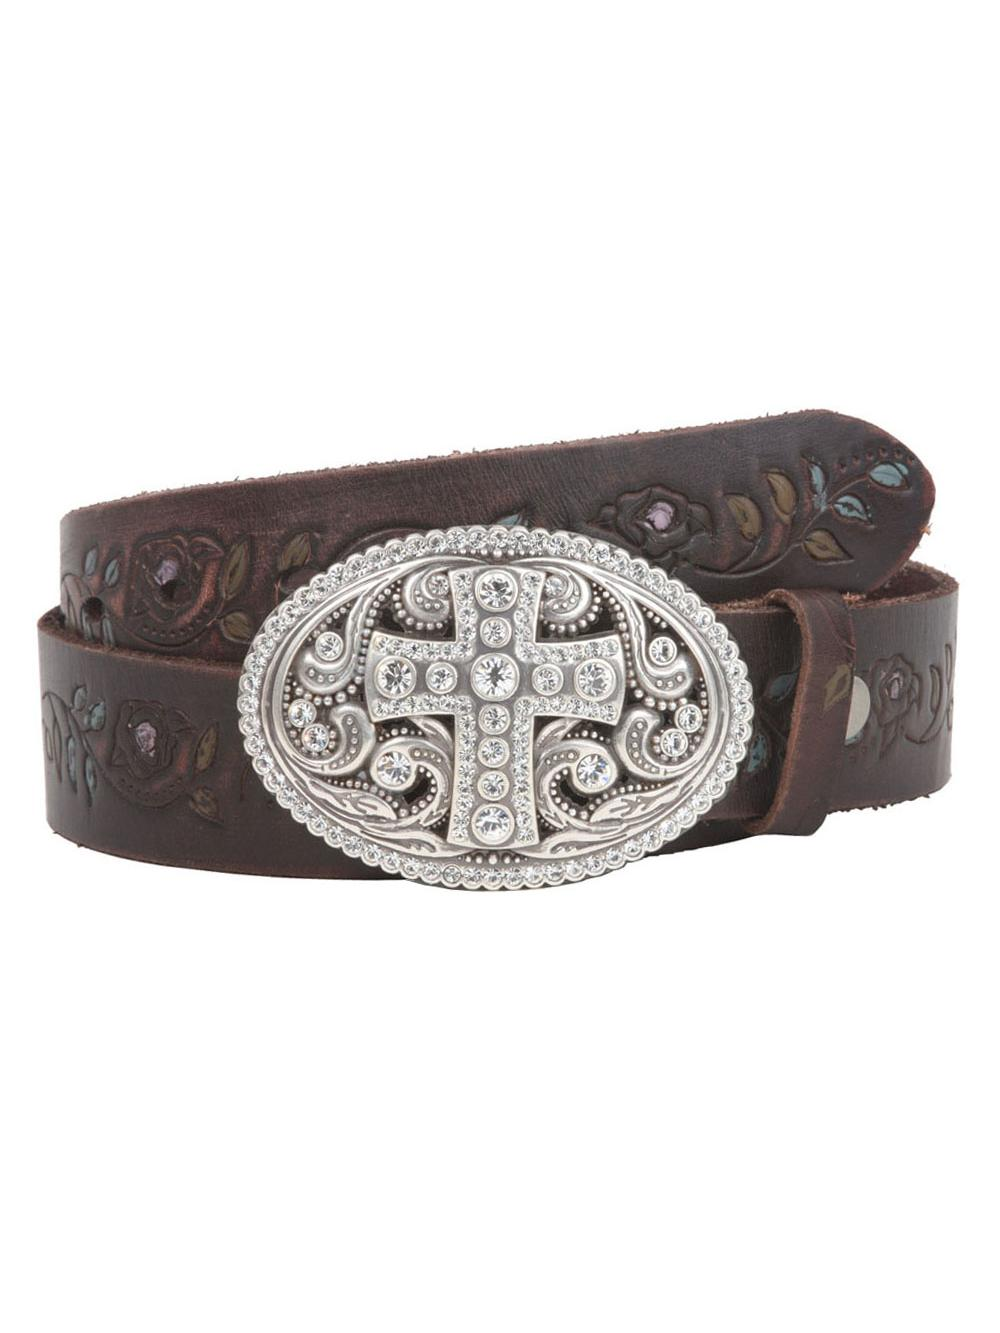 Snap On 1 1//2 Soft Hand Genuine Leather Perforated Detail Belt